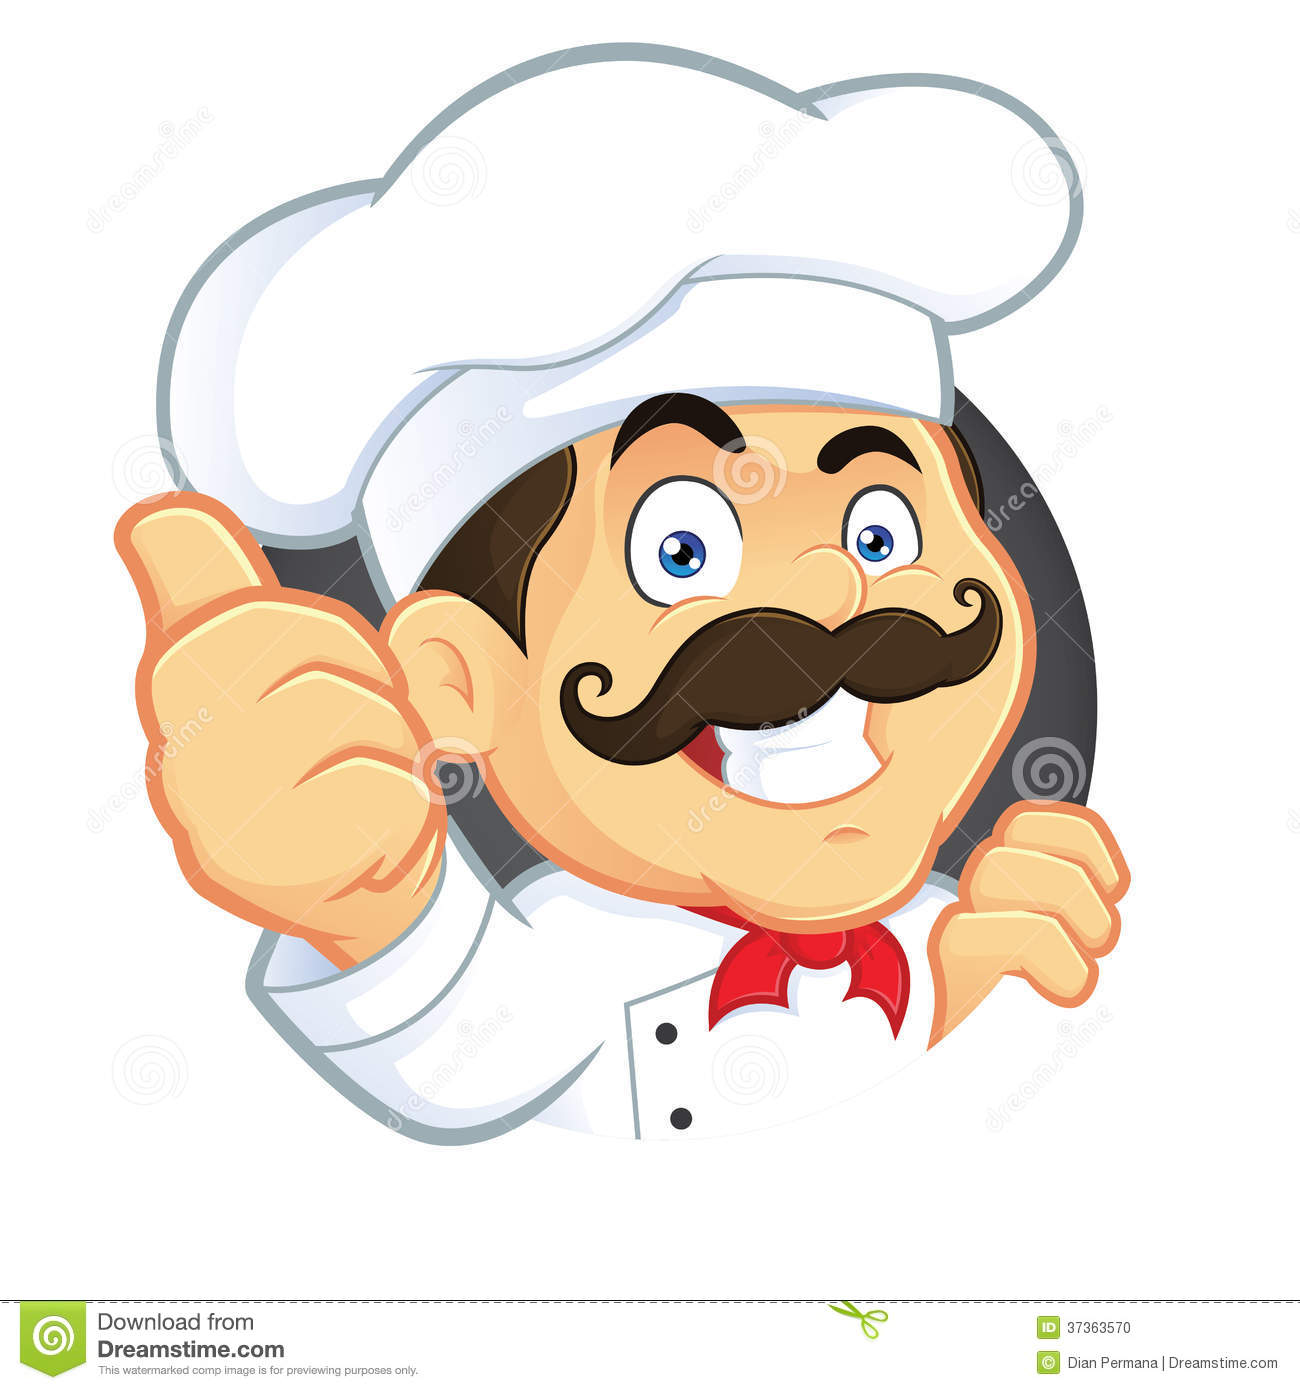 Chef Giving Thumbs Up Stock Photo-Chef Giving Thumbs Up Stock Photo-4